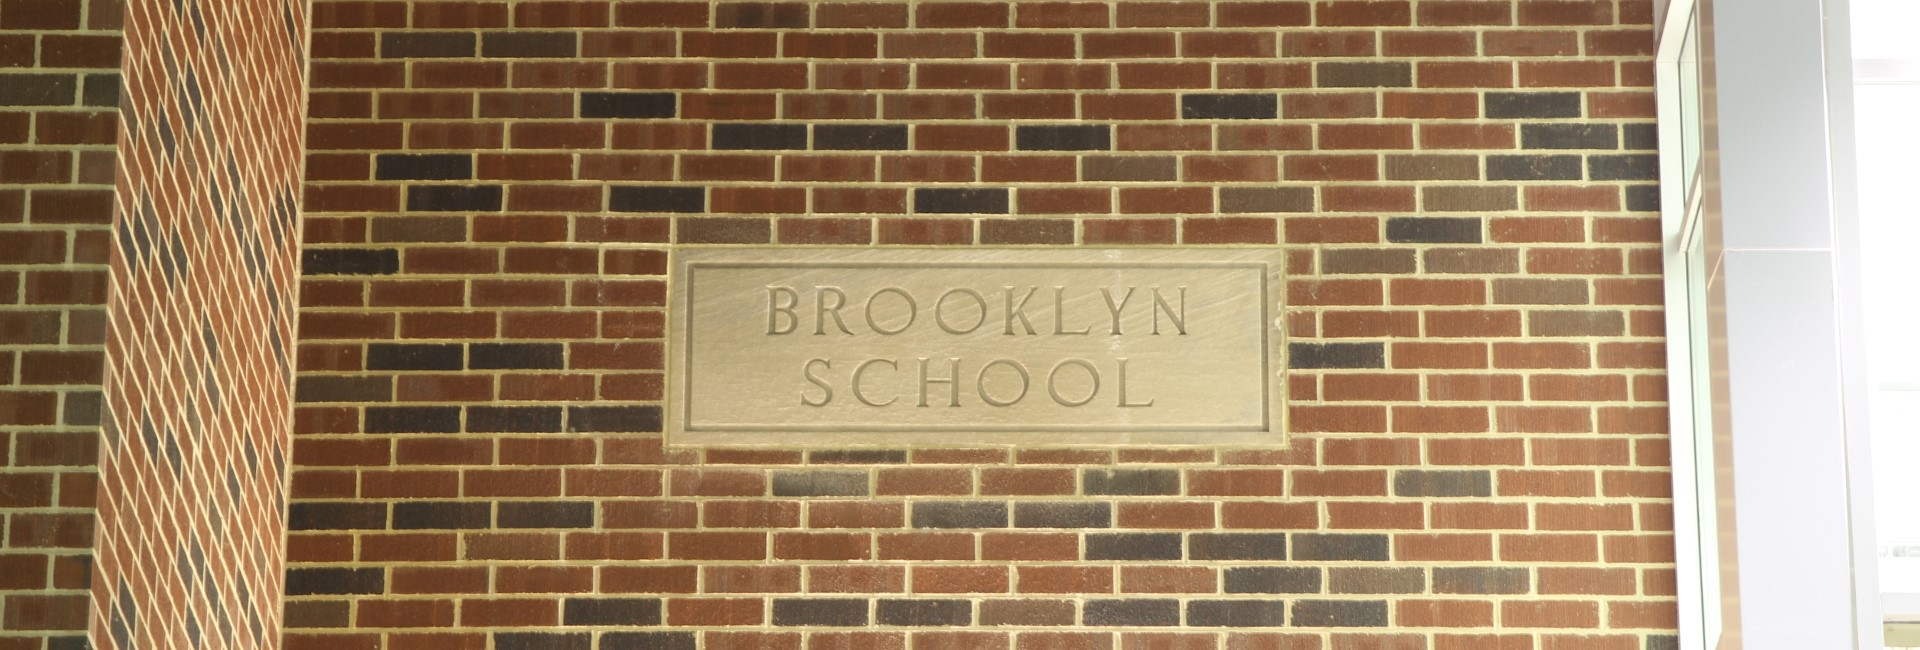 Brooklyn School Brick Sign